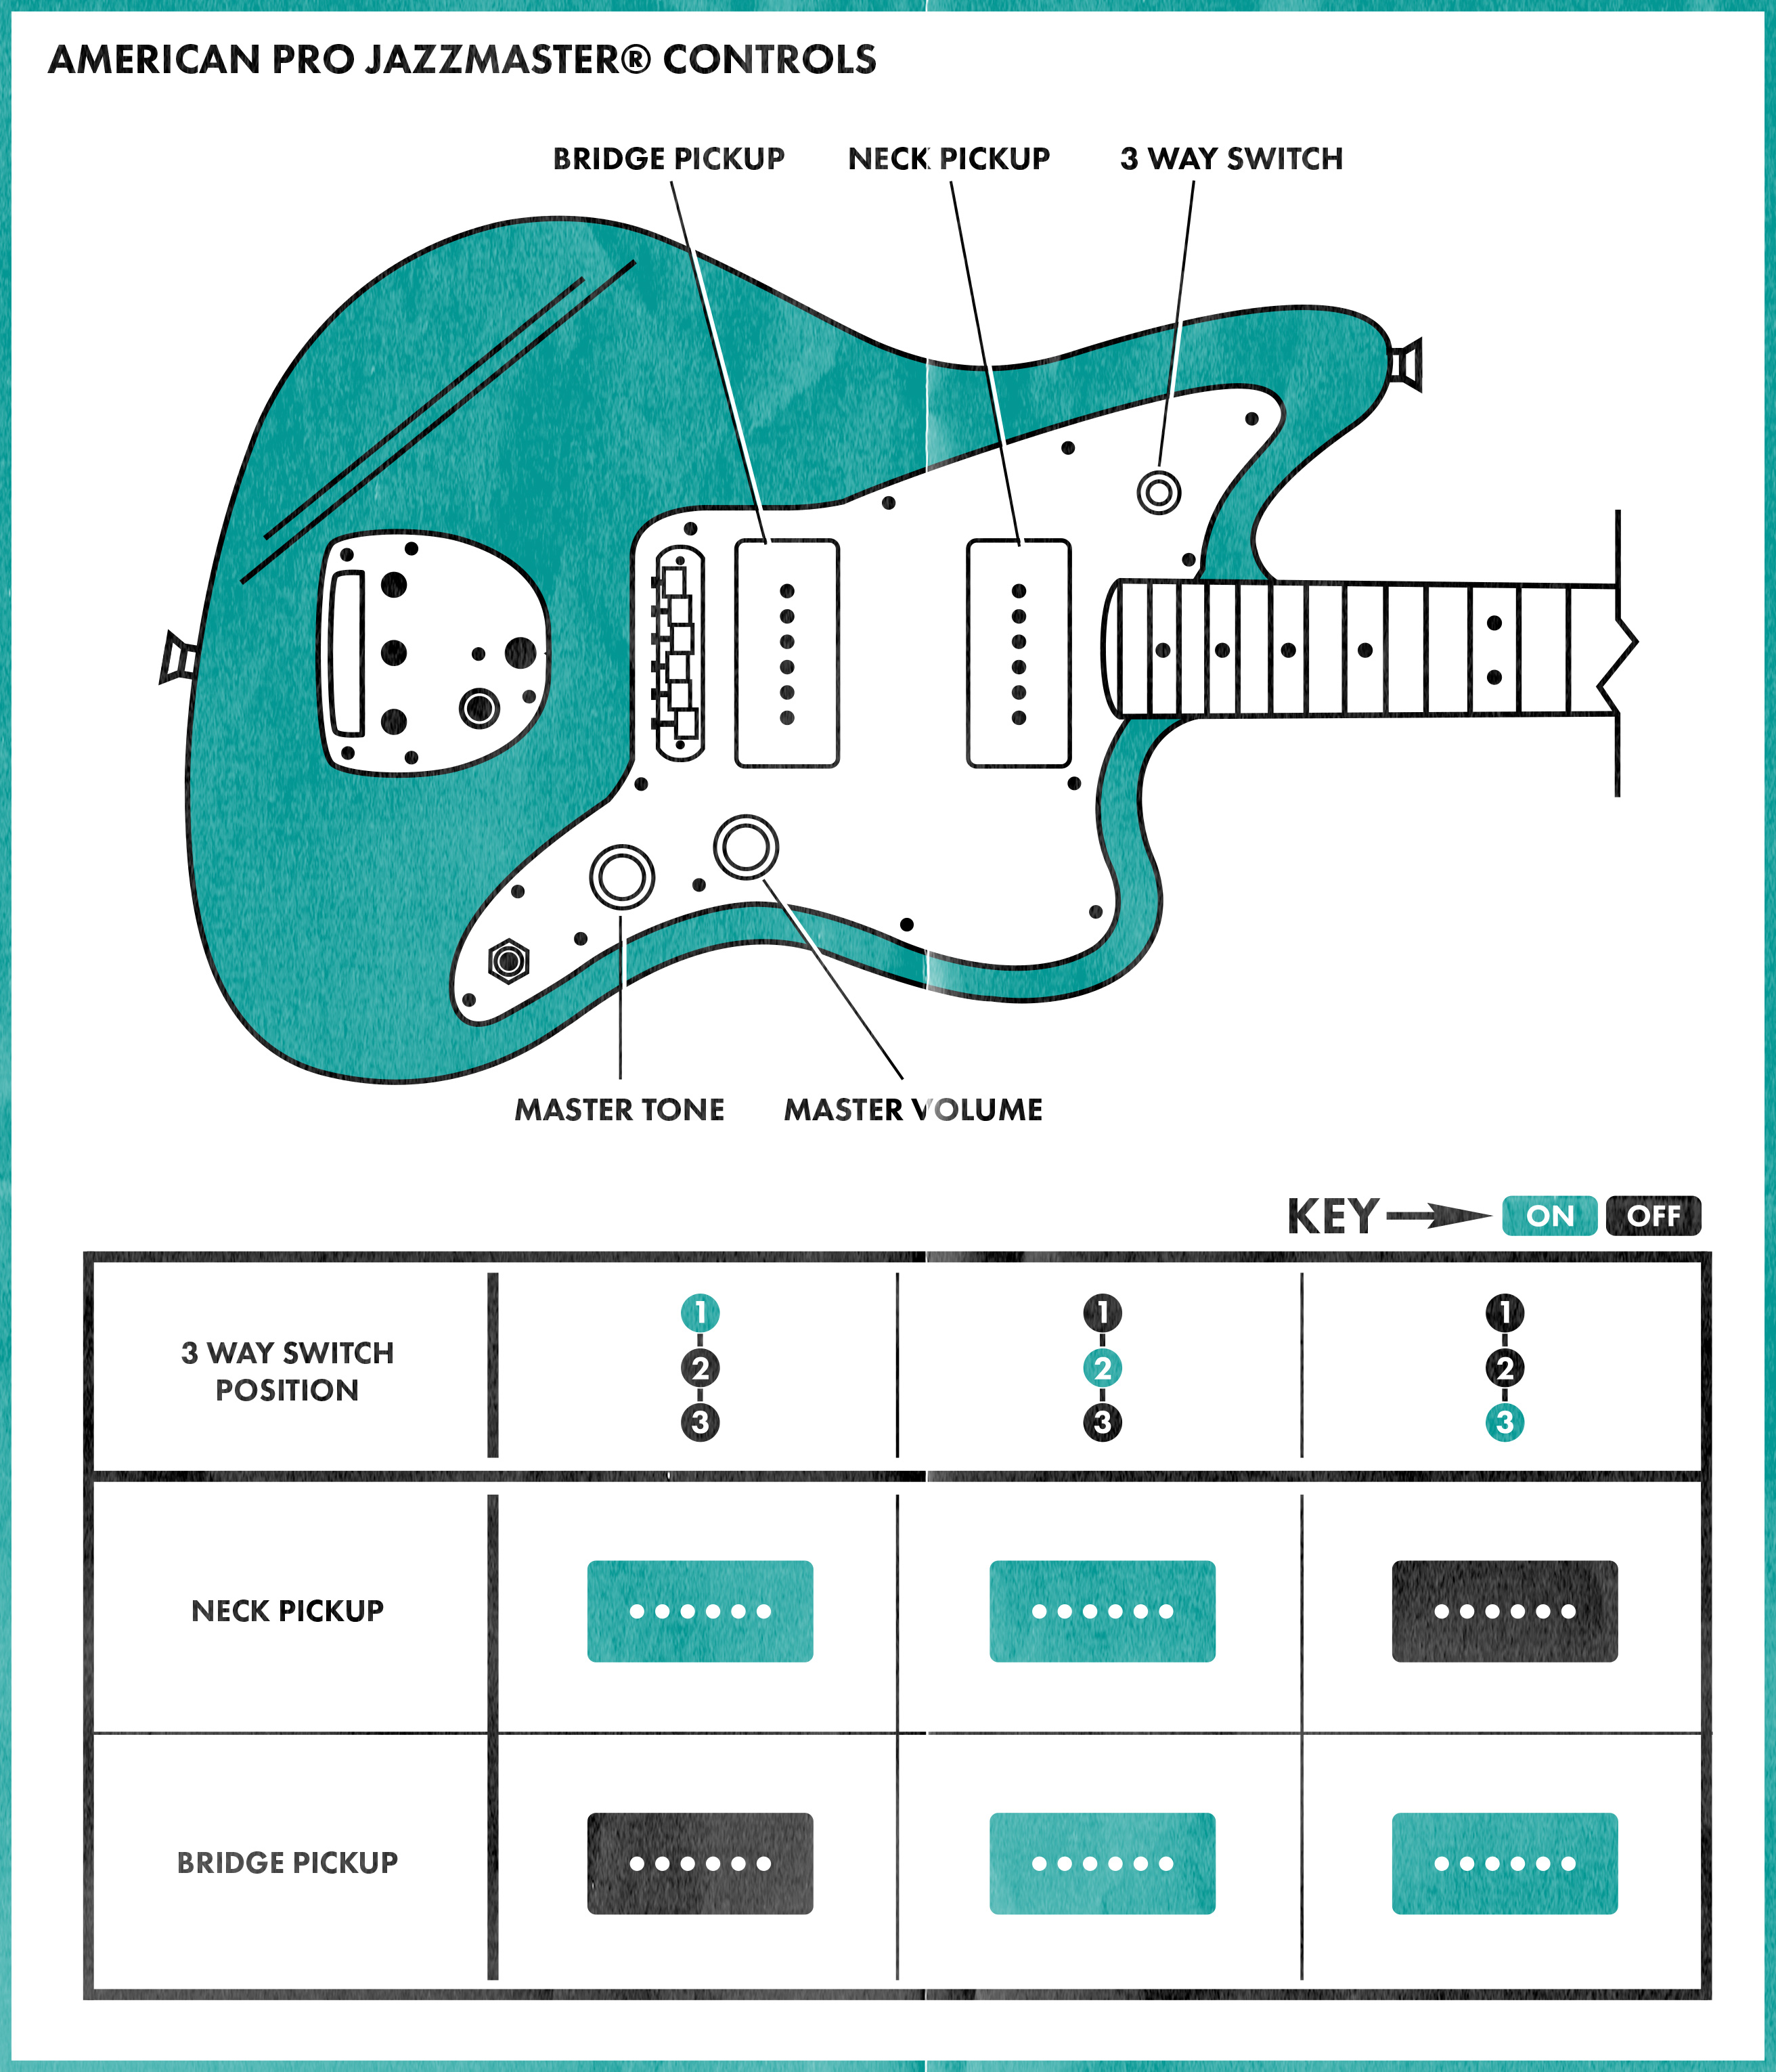 16349 jazzmaster diagram1 v2 jazzmaster controls explained fender jazzmaster fender jazzmaster wiring diagram at panicattacktreatment.co